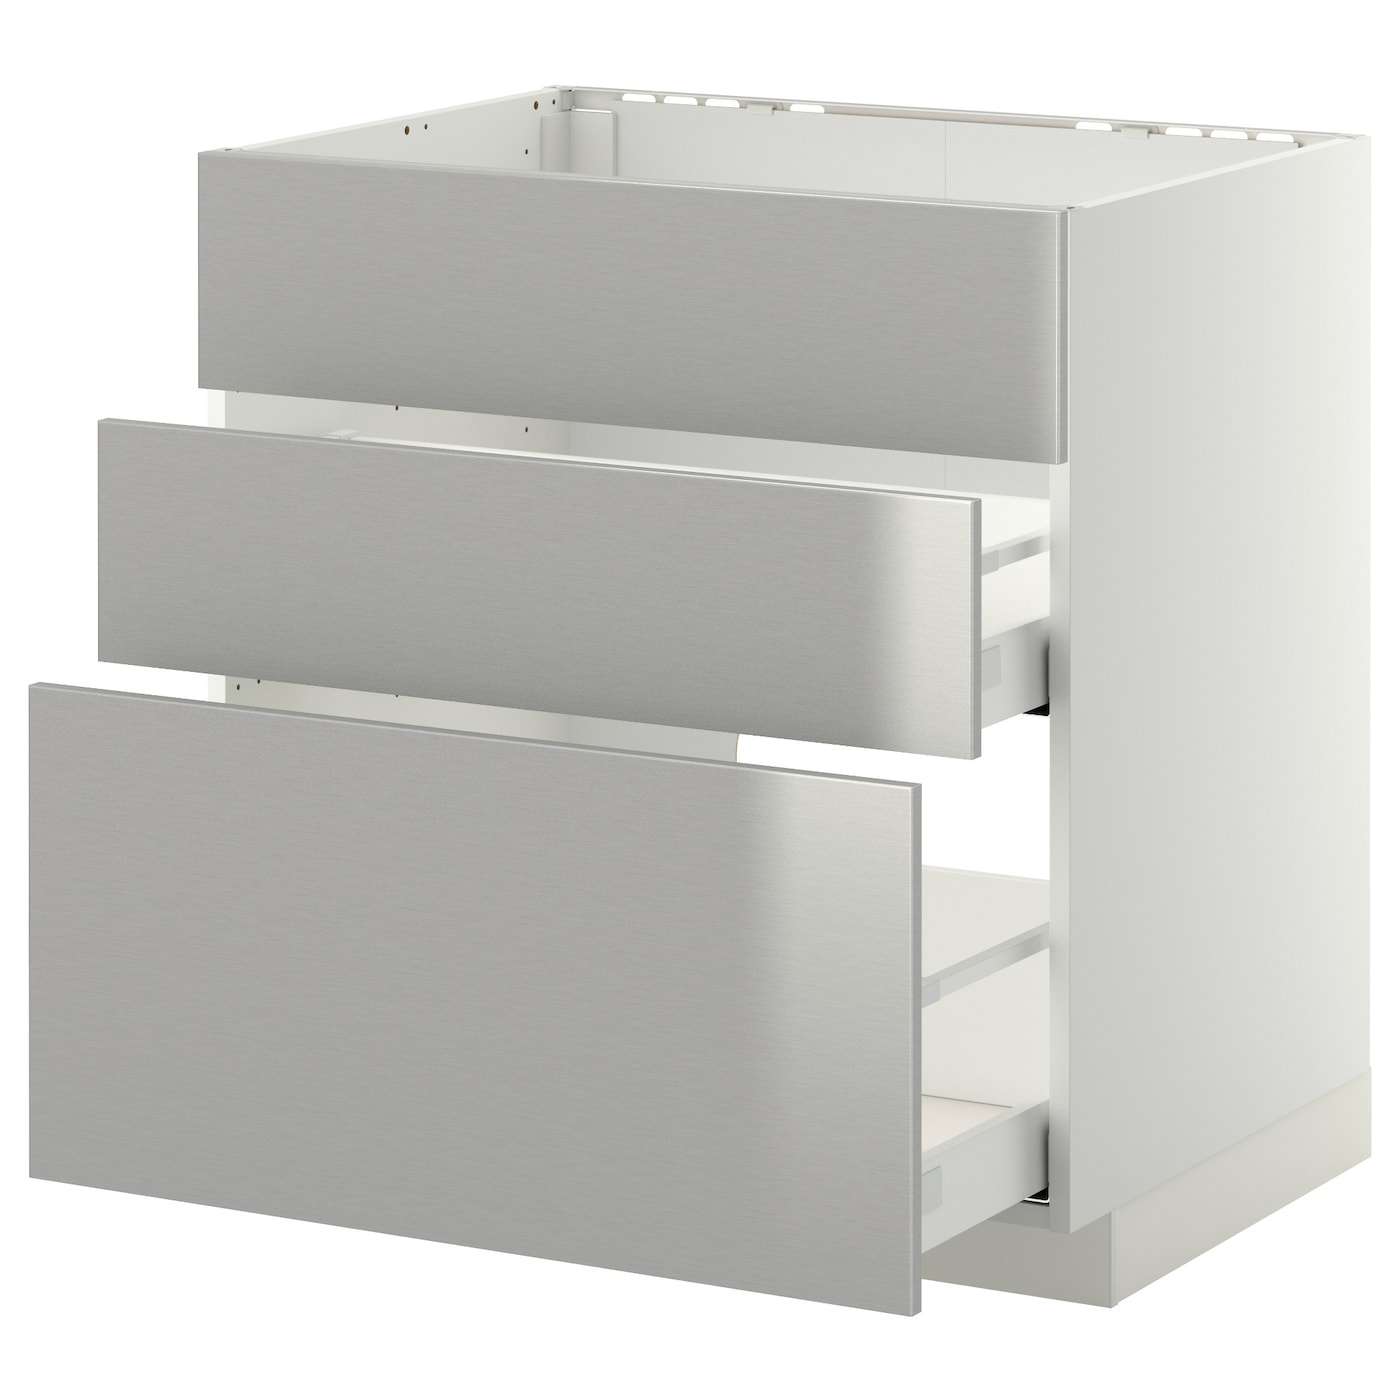 Metod maximera base cab f sink 3 fronts 2 drawers white for Stainless steel drawers kitchen